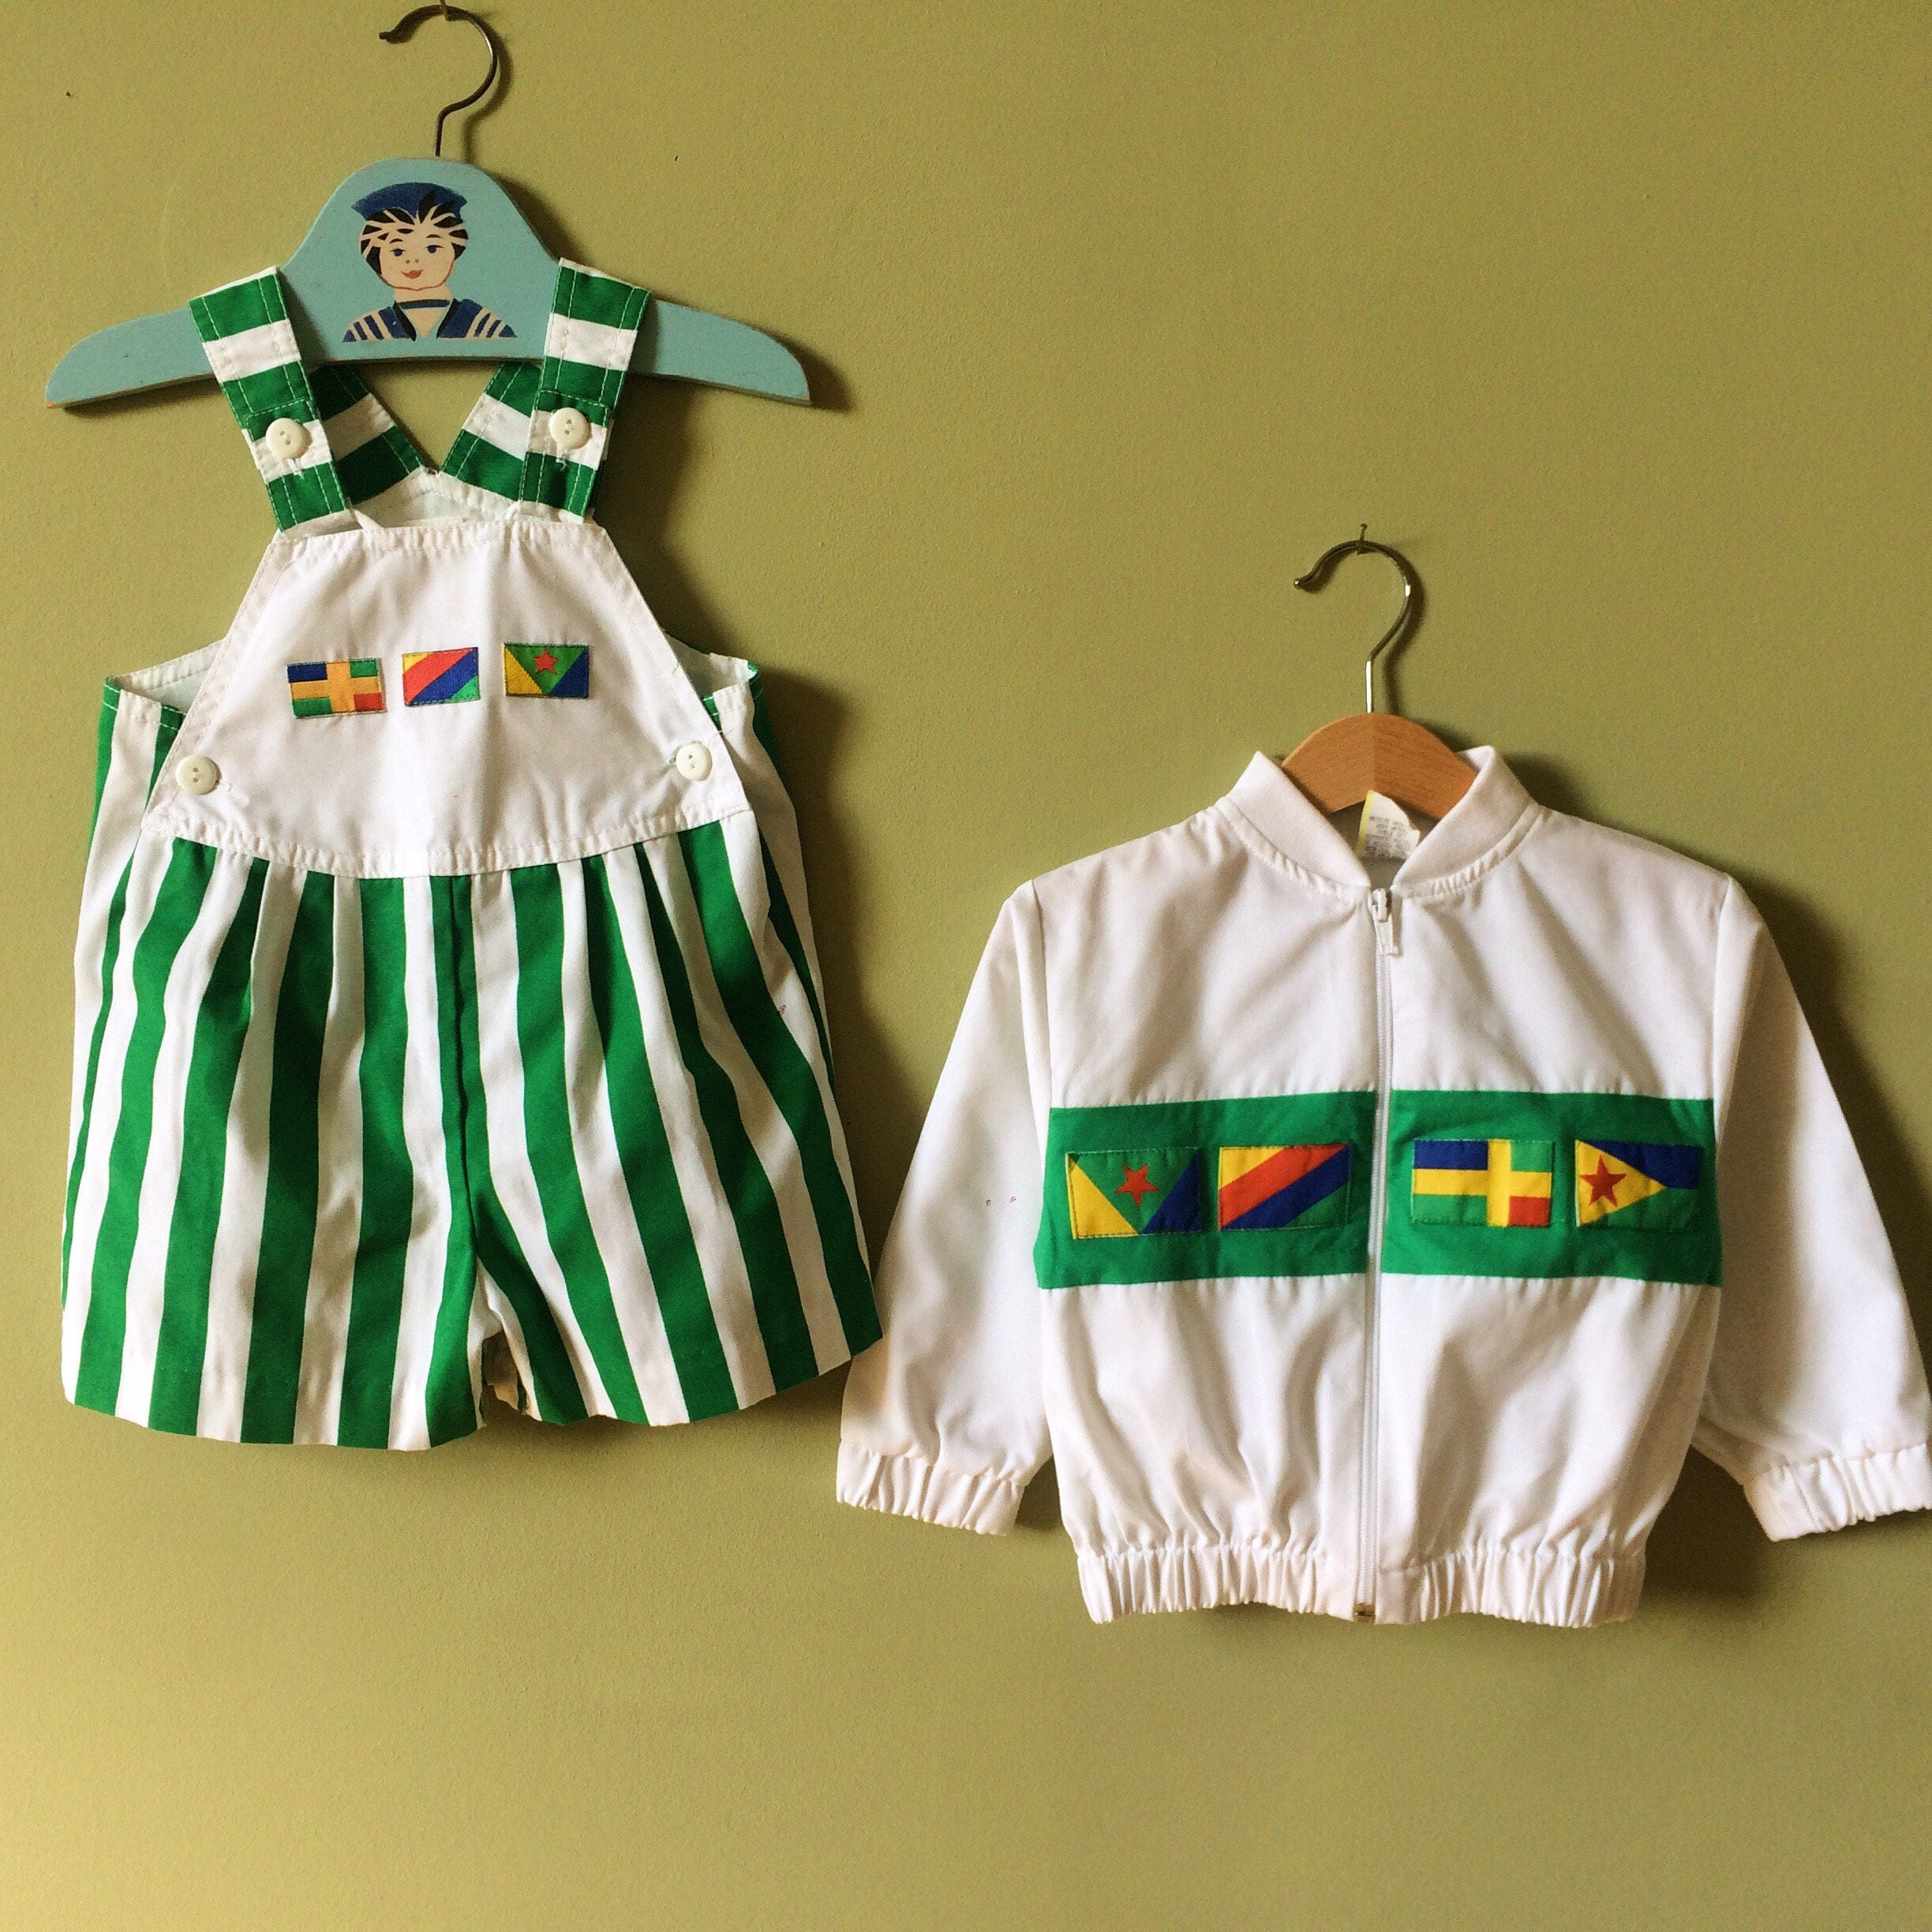 Vintage baby dungarees shorts  baby overalls matching jacket  tracksuit top. Green. Flags. Toddler boy girl. 1980s.  Age 2  24 months